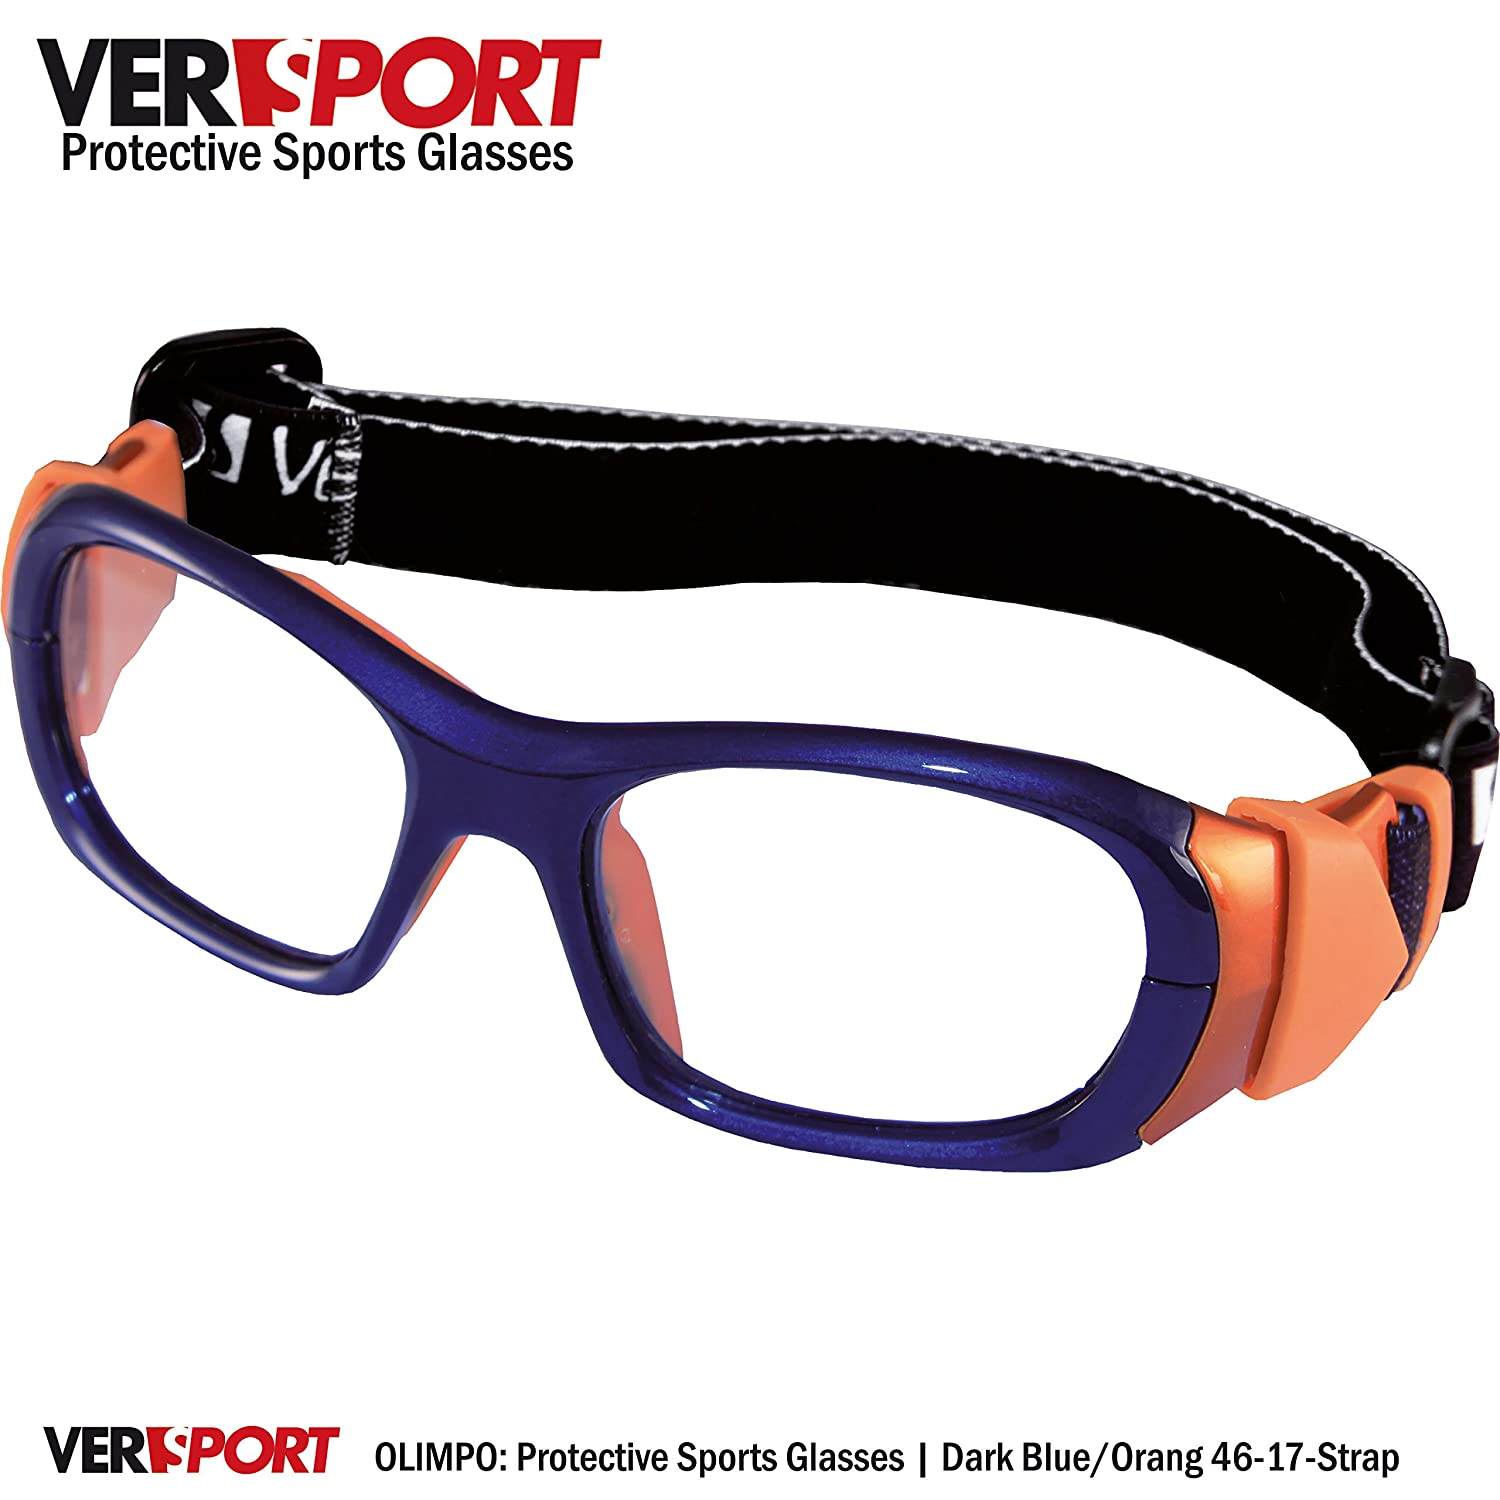 4295b8488cf Amazon.com  VERSPORT  OLIMPO 46 Protective Sports Glasses - Blue Orange